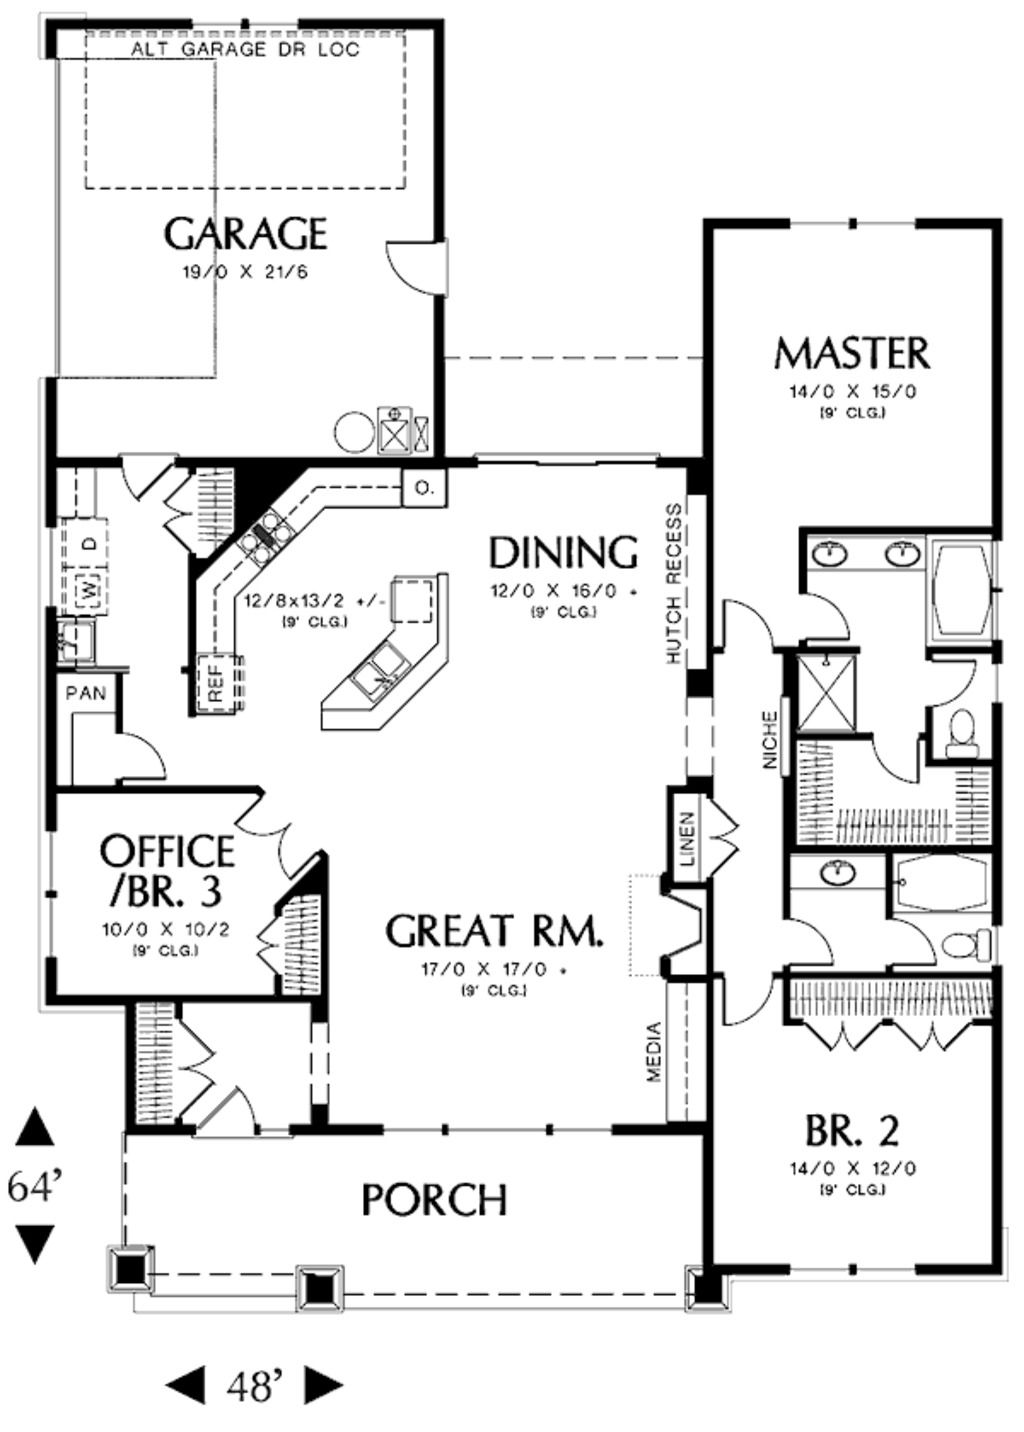 Craftsman style house plan 3 beds baths 1891 sq ft for House plans with shop attached